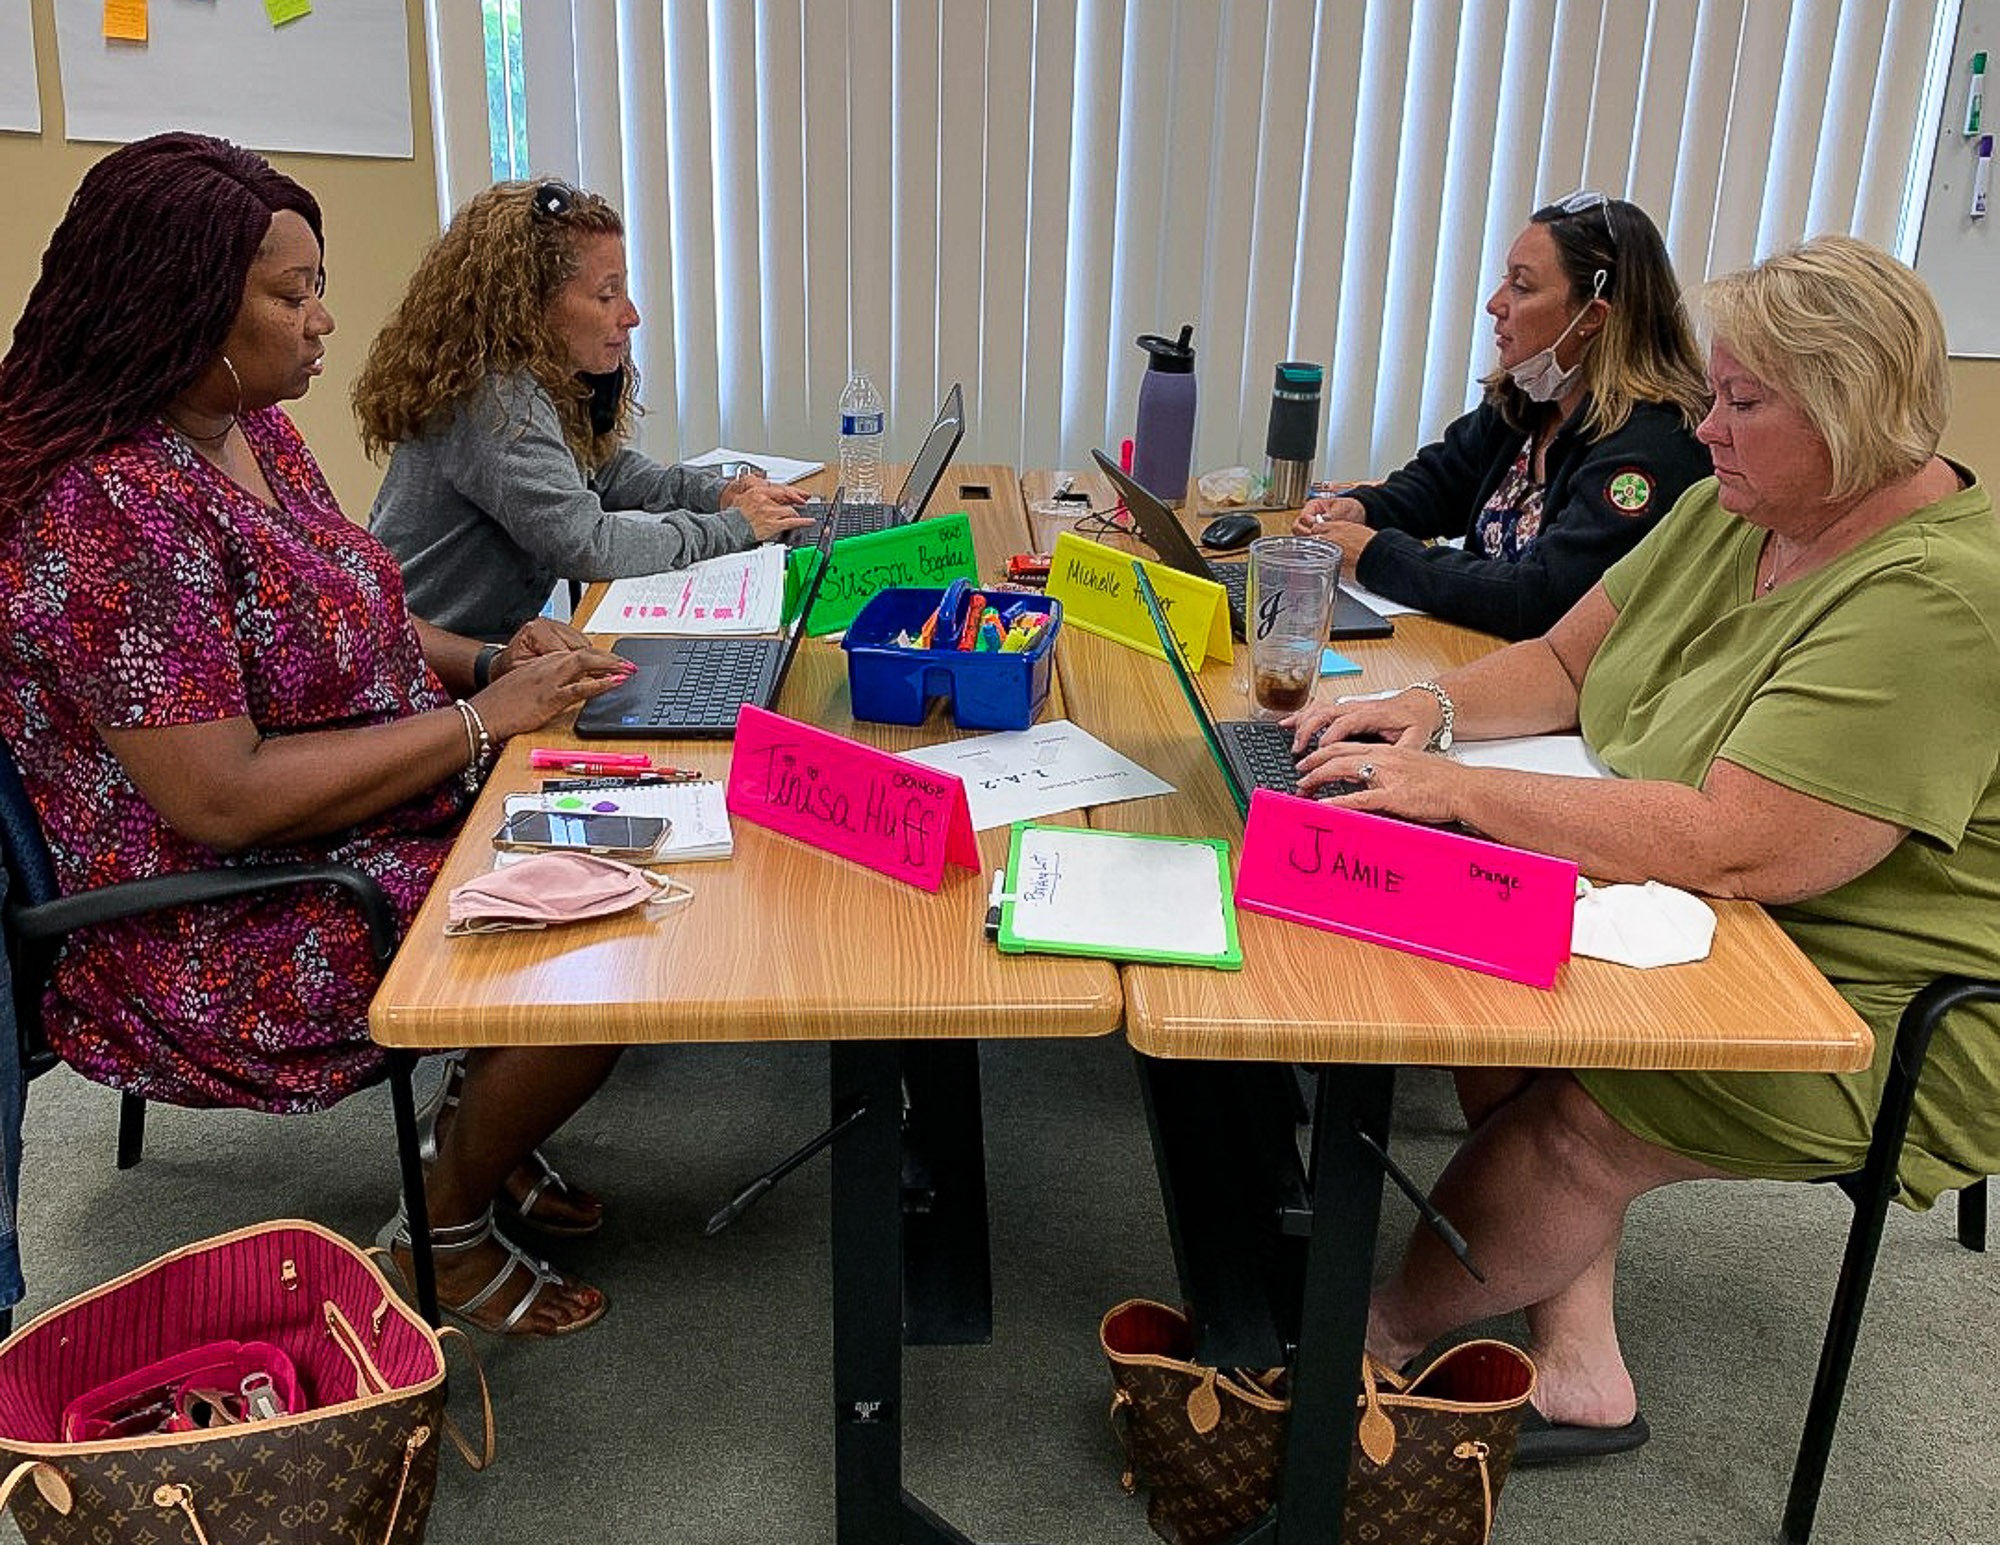 Four teachers from Forest Park sit at tables and work on laptops during professional development training.